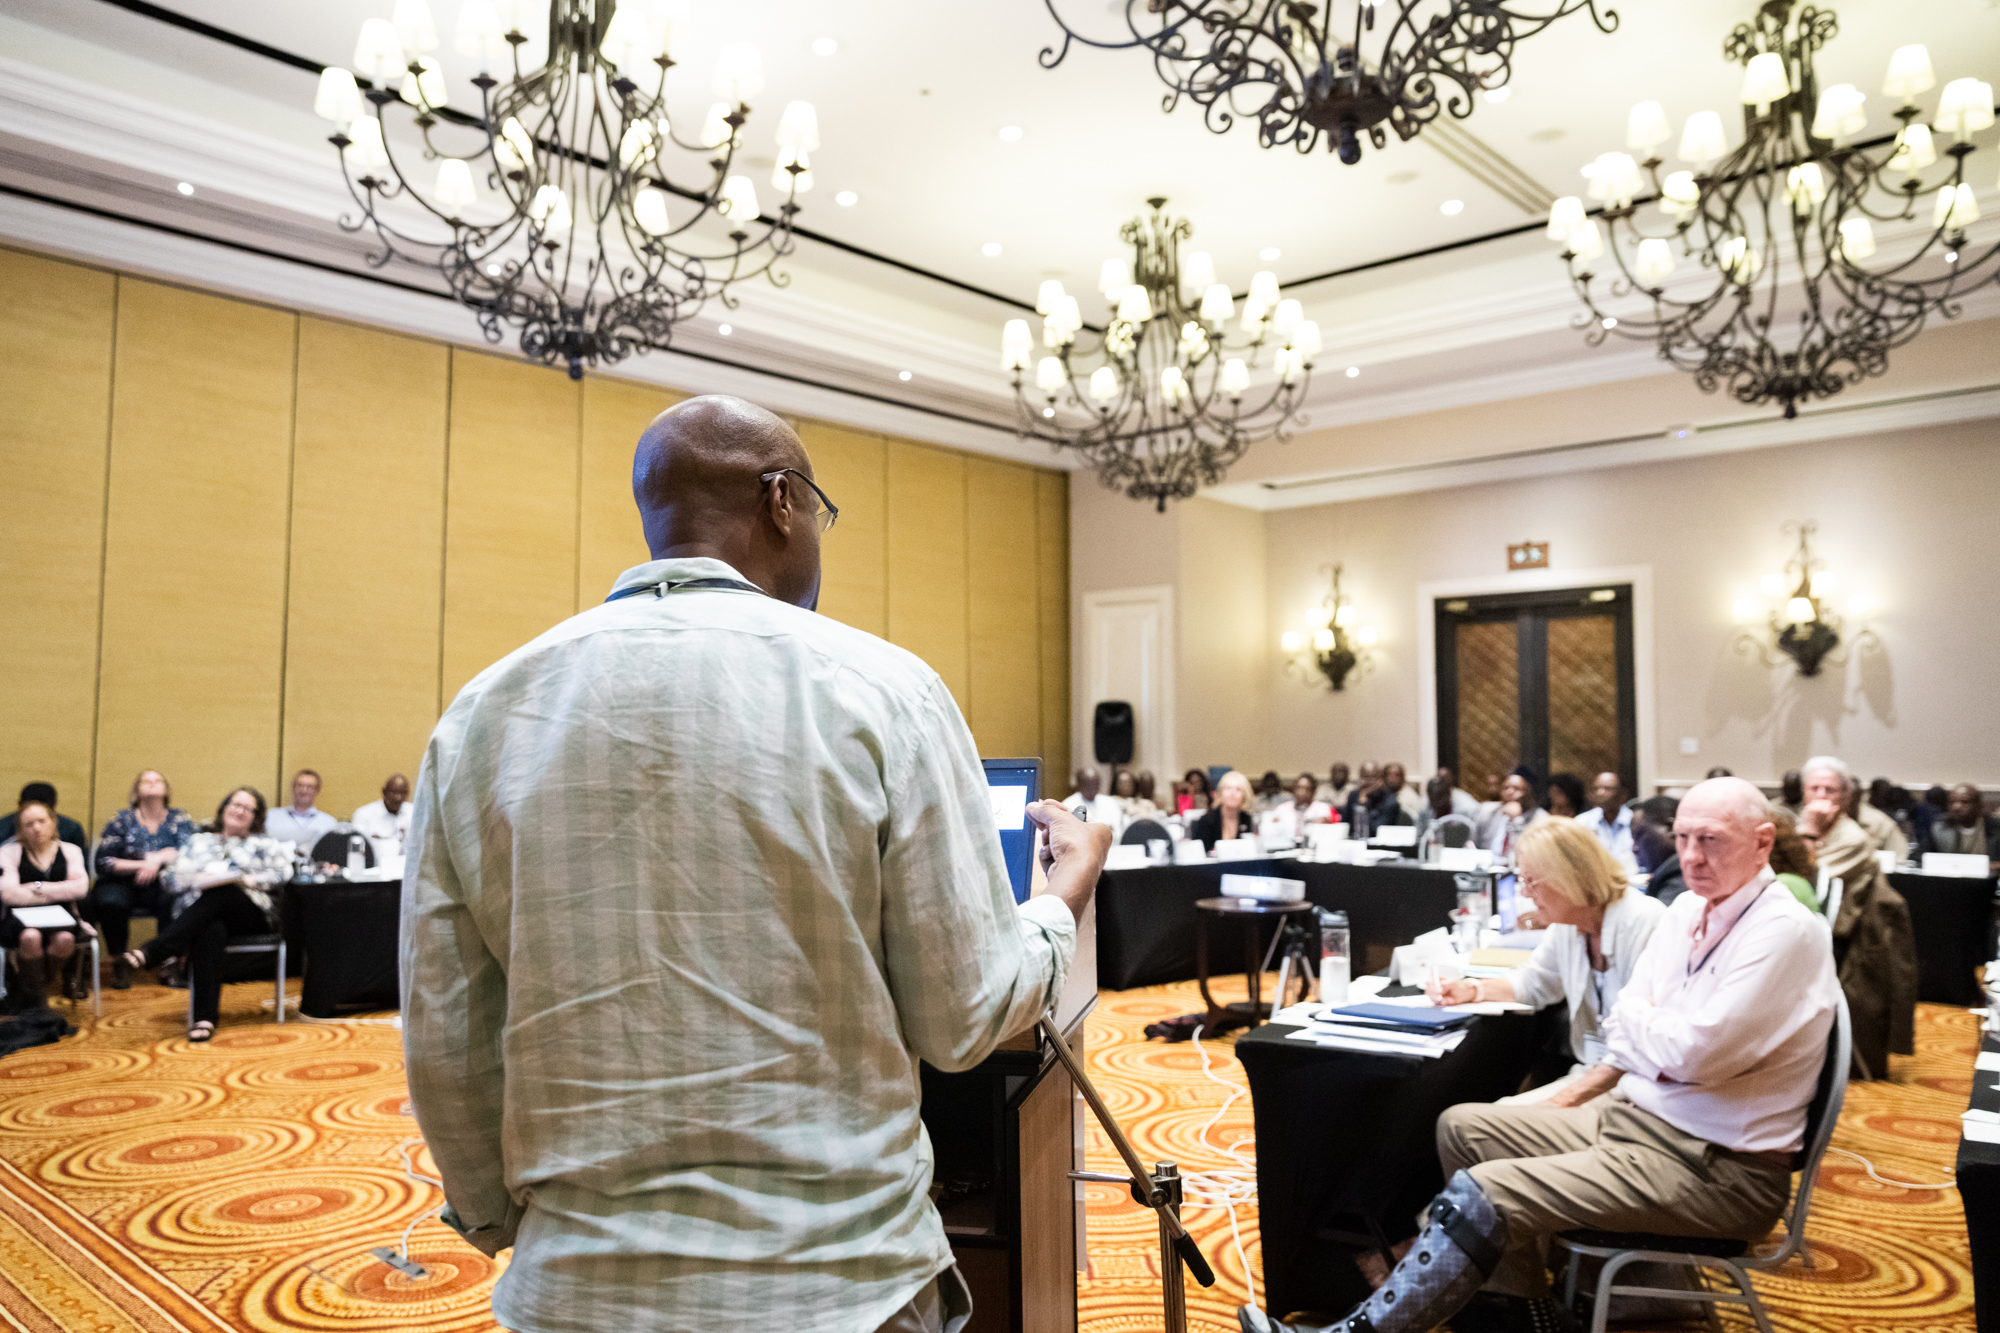 Dr. Kelly Chibale presents at the Isdell:Flowers Cross Border Malaria Initiative's 2020 Round Table in Livingstone, Zambia. Neville Isdell, donor to the H3D, is seen listening intently on the right.